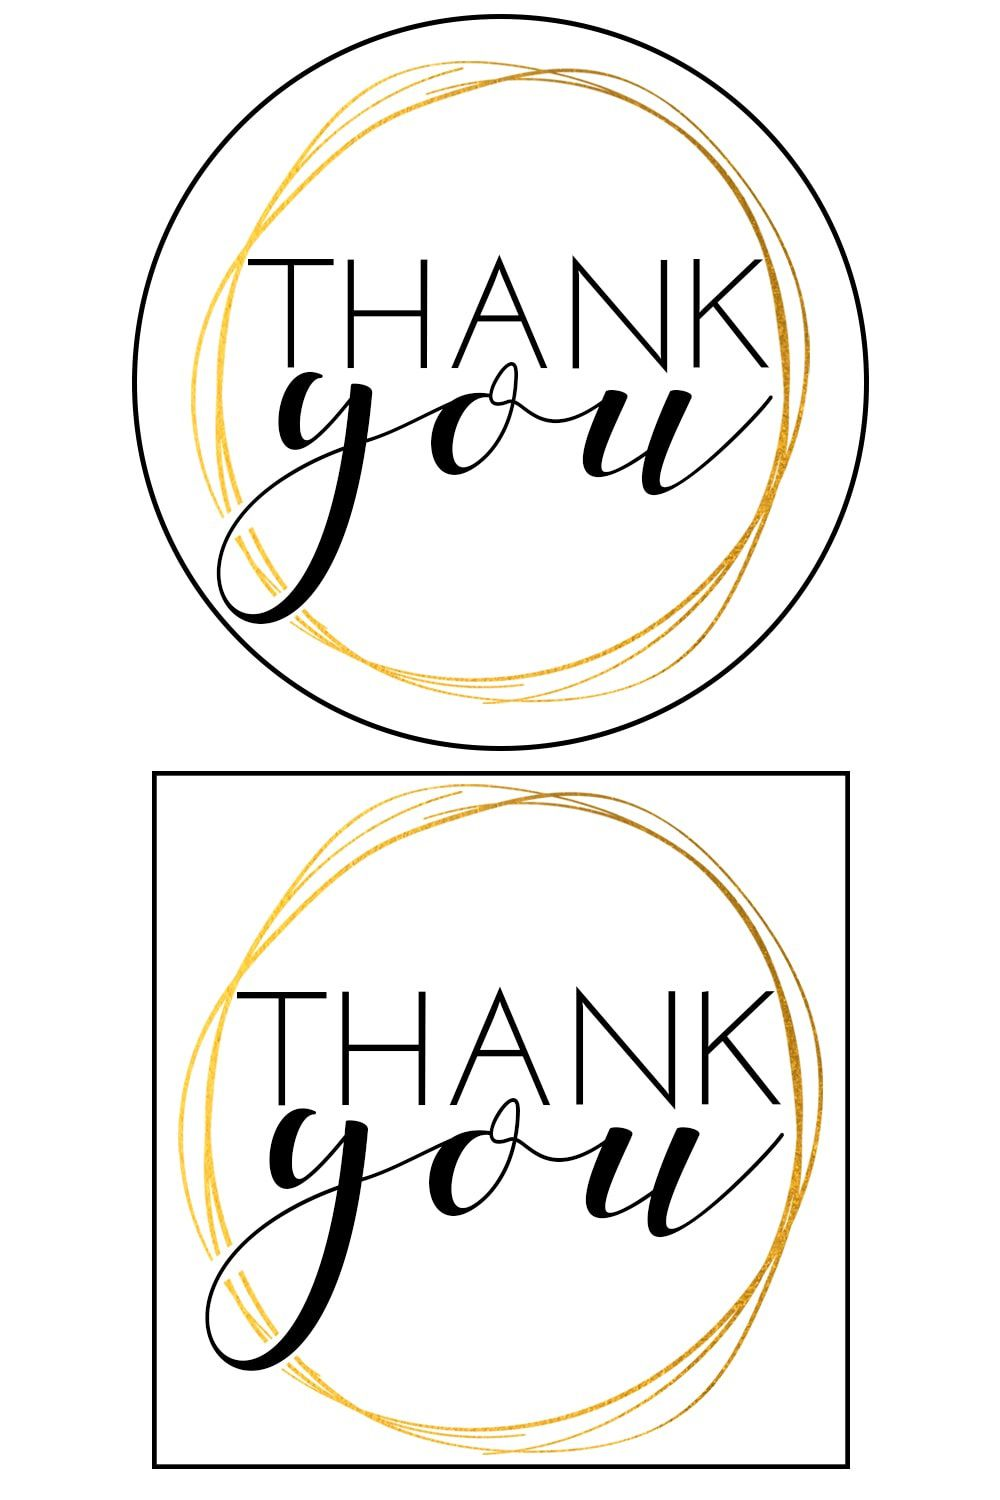 010 Awful Free Printable Thank You Gift Tag Template Sample  TemplatesFull